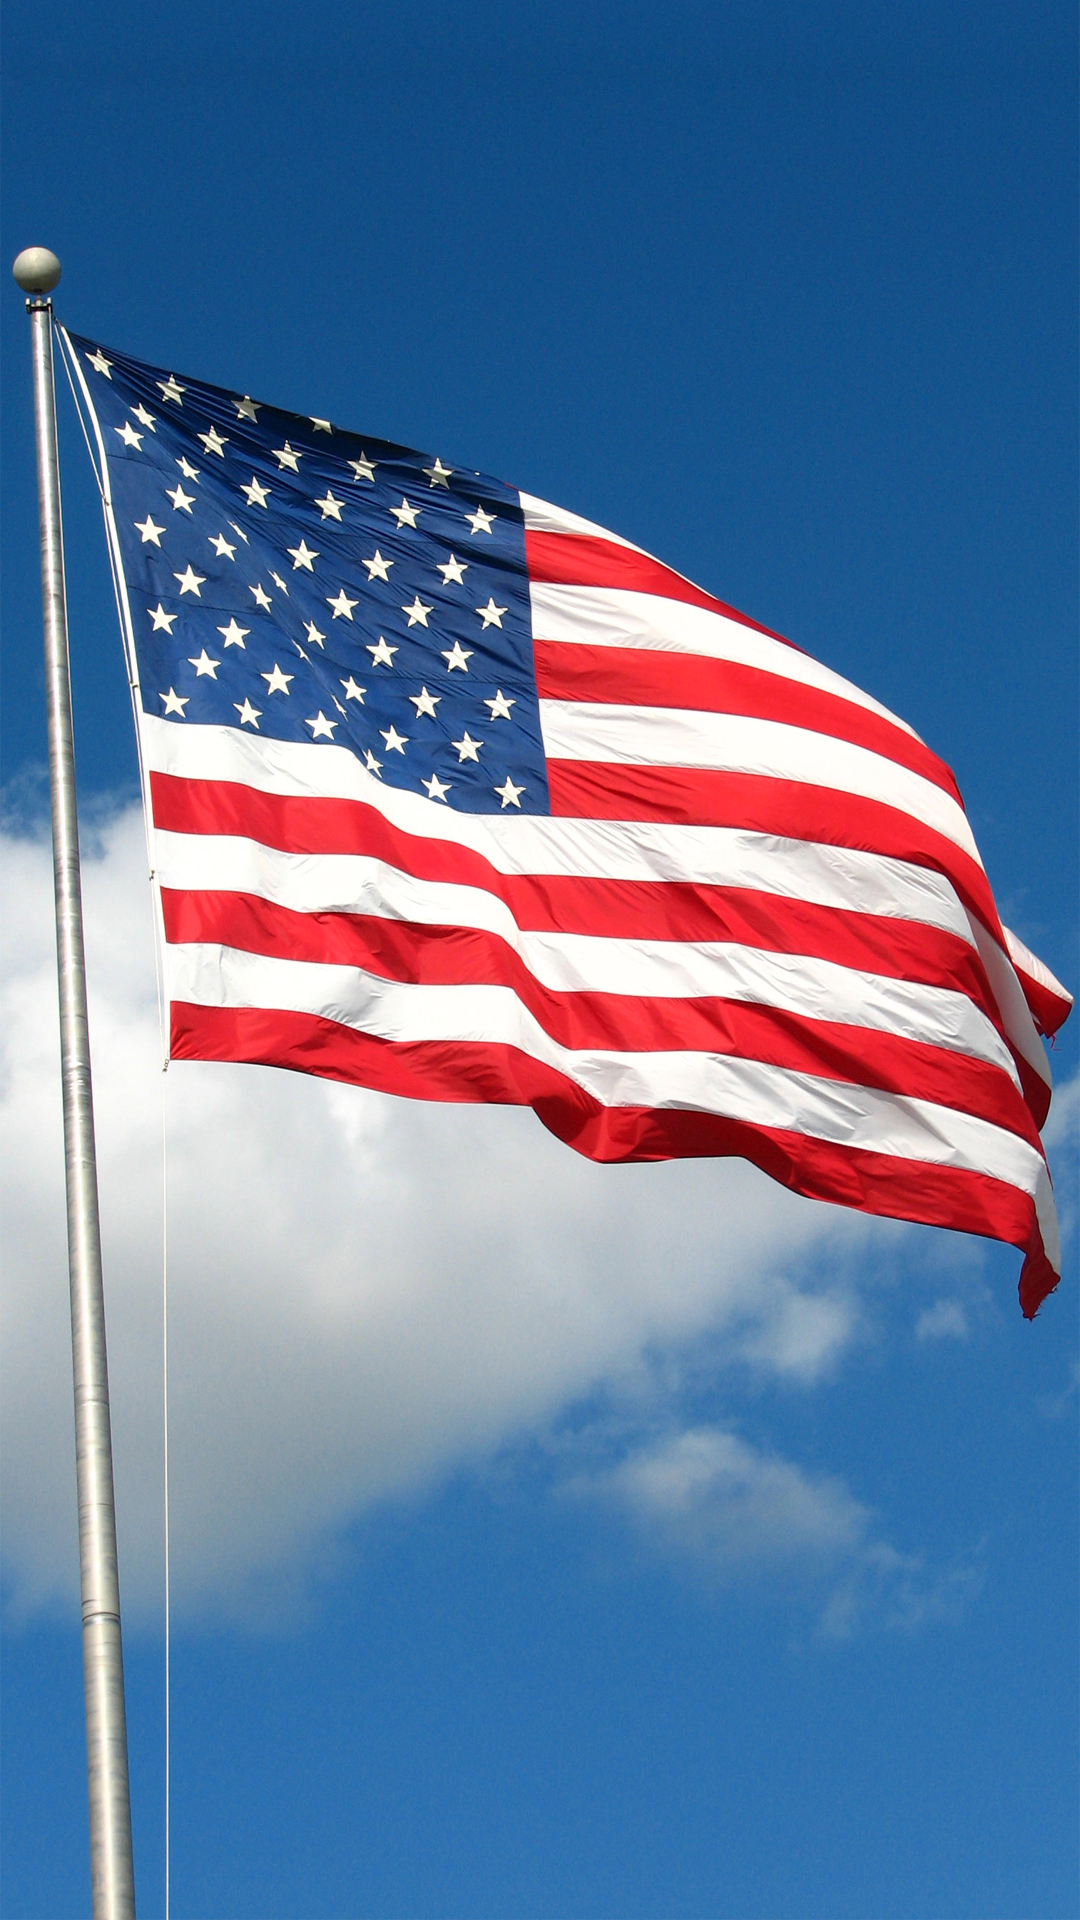 Hd wallpaper usa flag - Hd Wallpaper Usa Flag Usa Flag Htc One American Flag Download